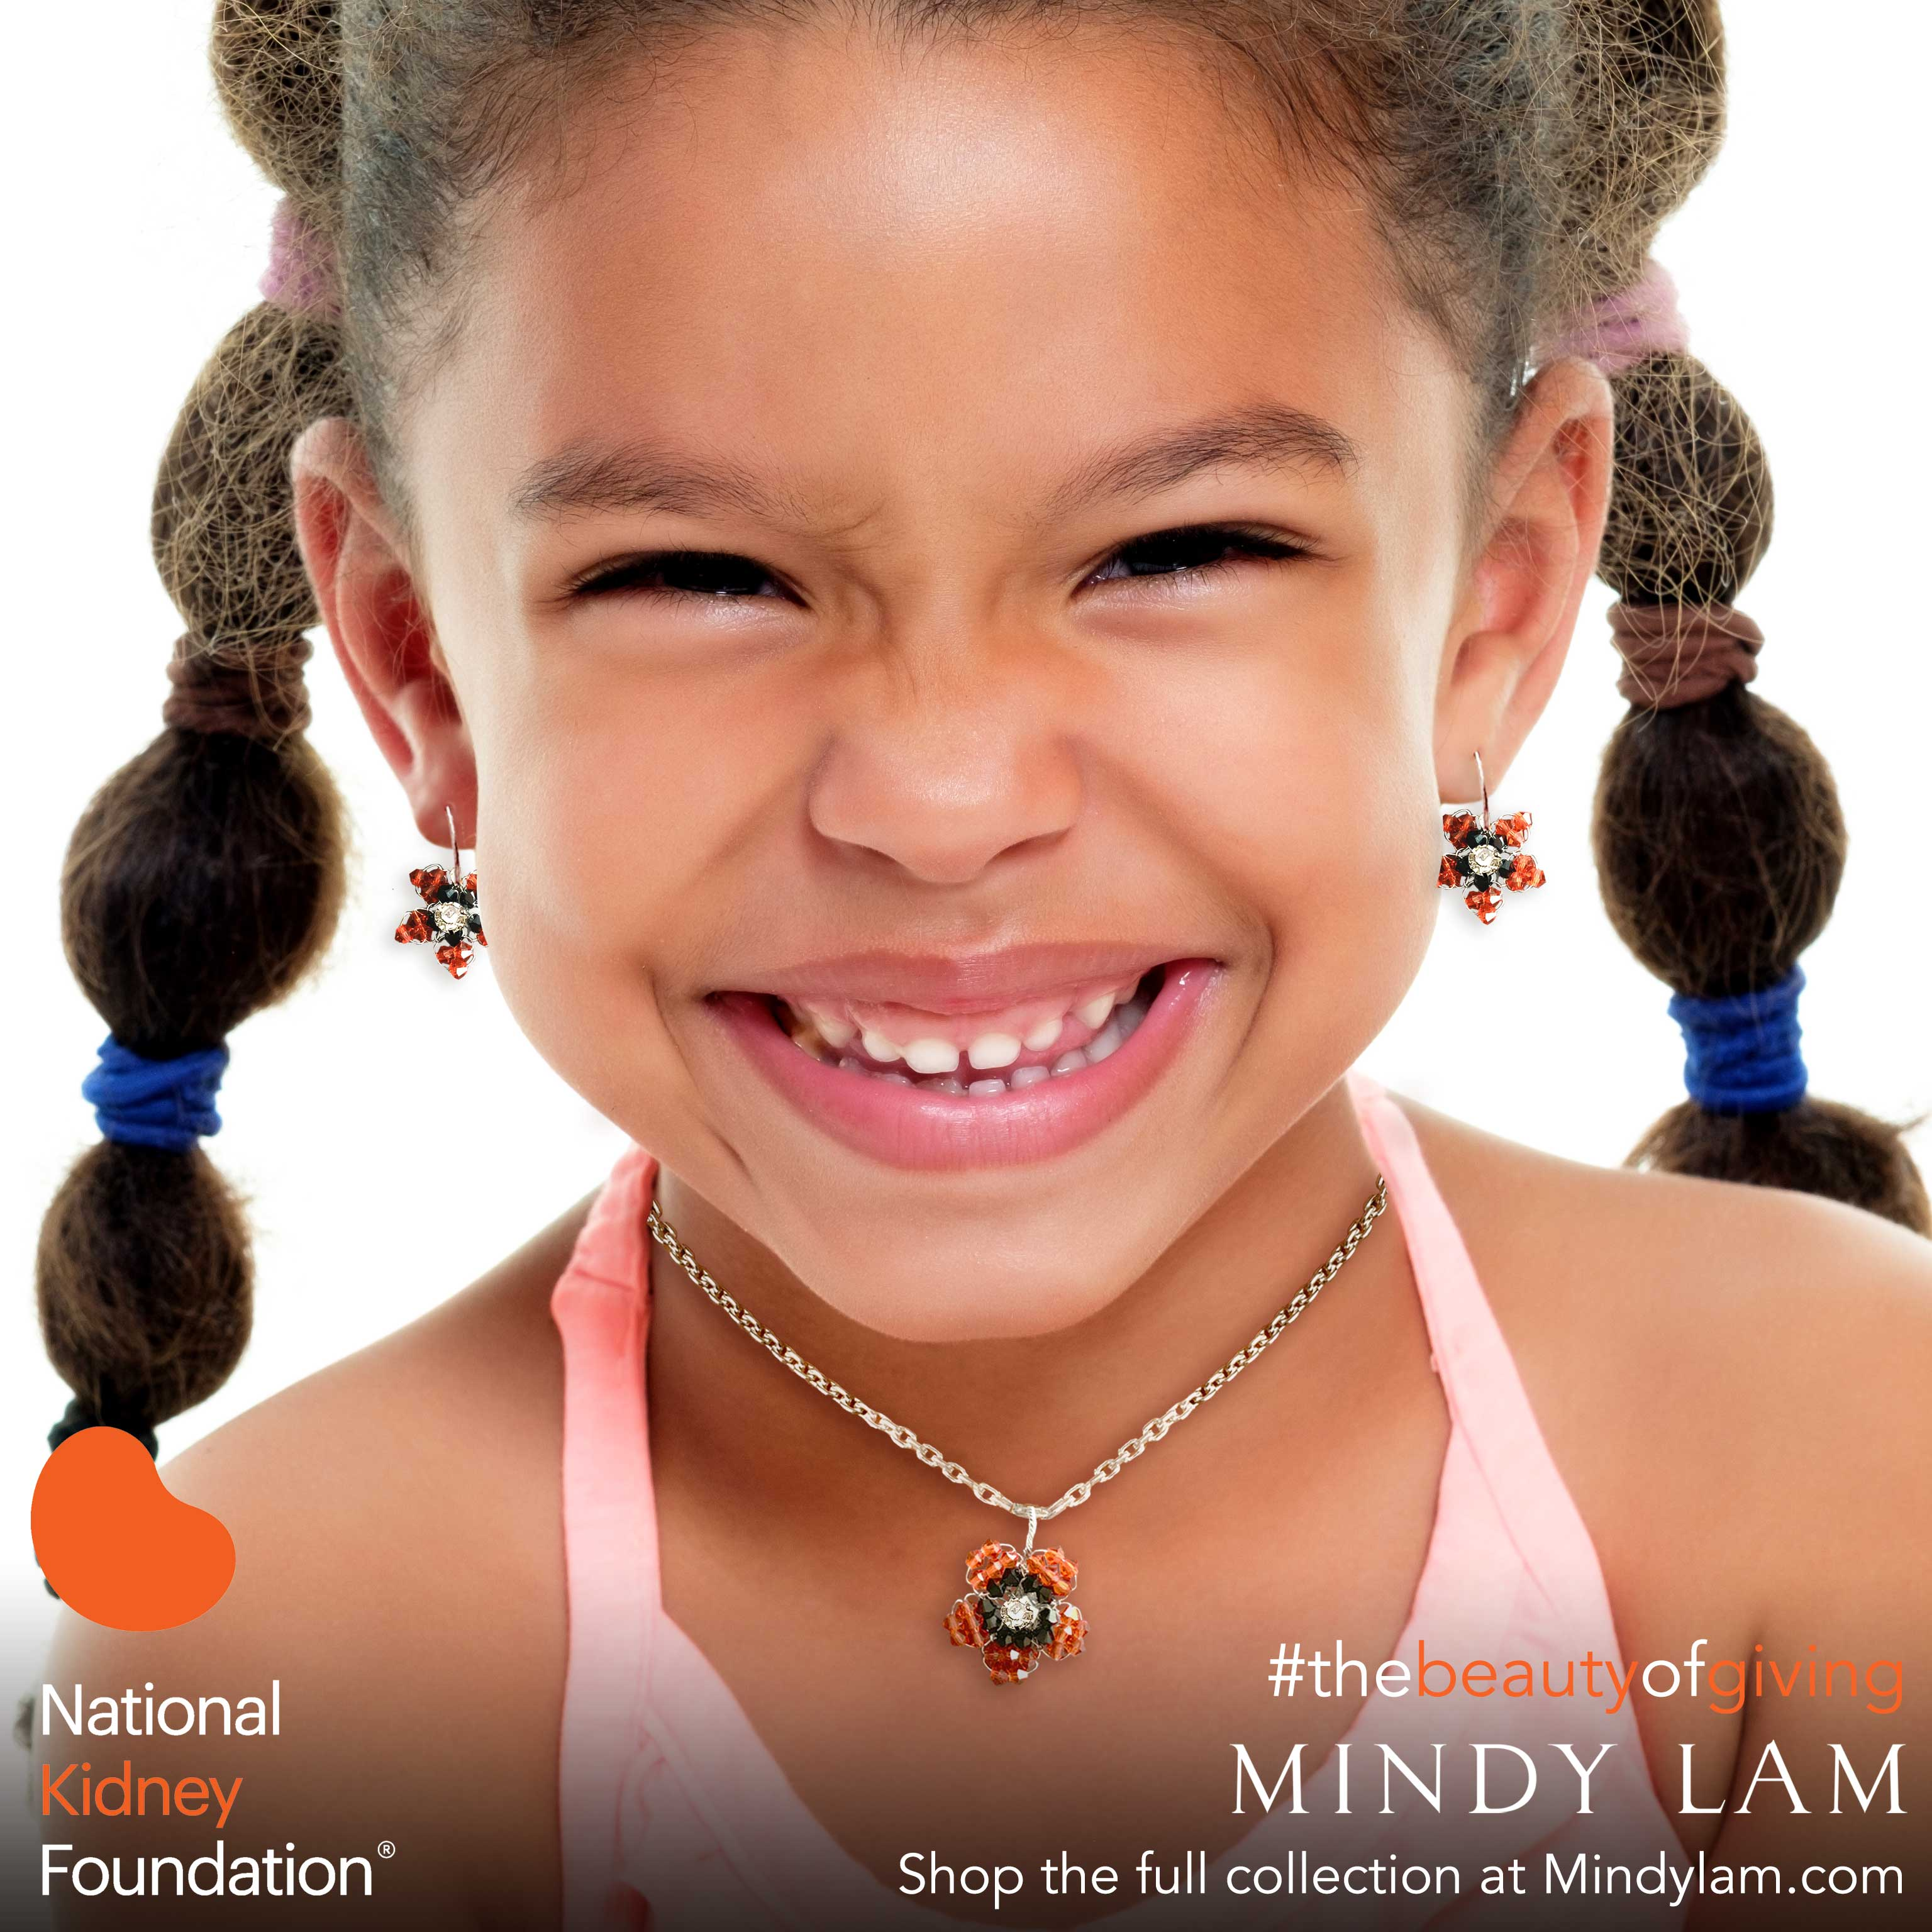 a young African American girl with a huge smile wearing a pair of orange earrings and an orange necklace designed by Mindy Lam